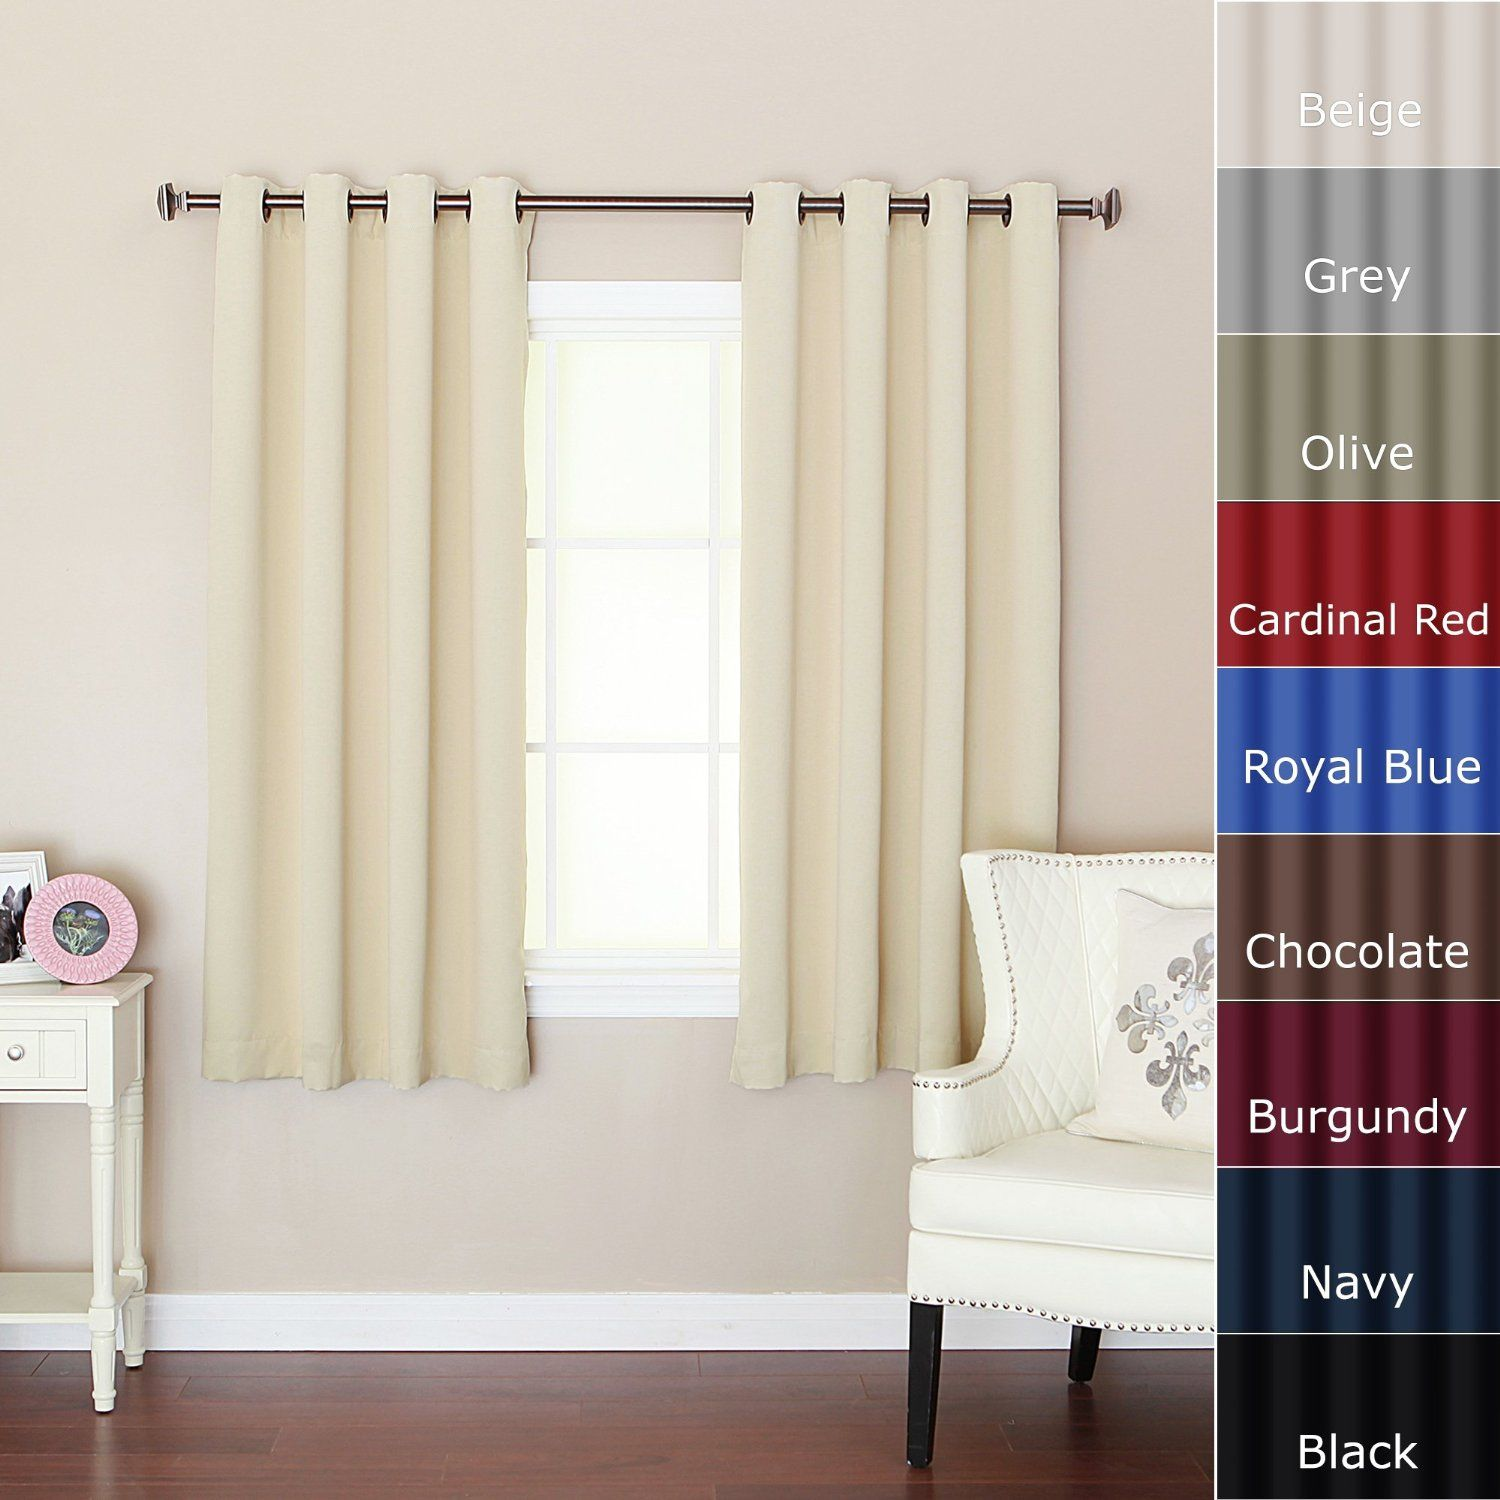 ivory blackout with foam from decorators amazon awful amazonthermal size collection opaque full monaco home semi salethermal sale curtains of and picture concept at drapes curtain thermal on